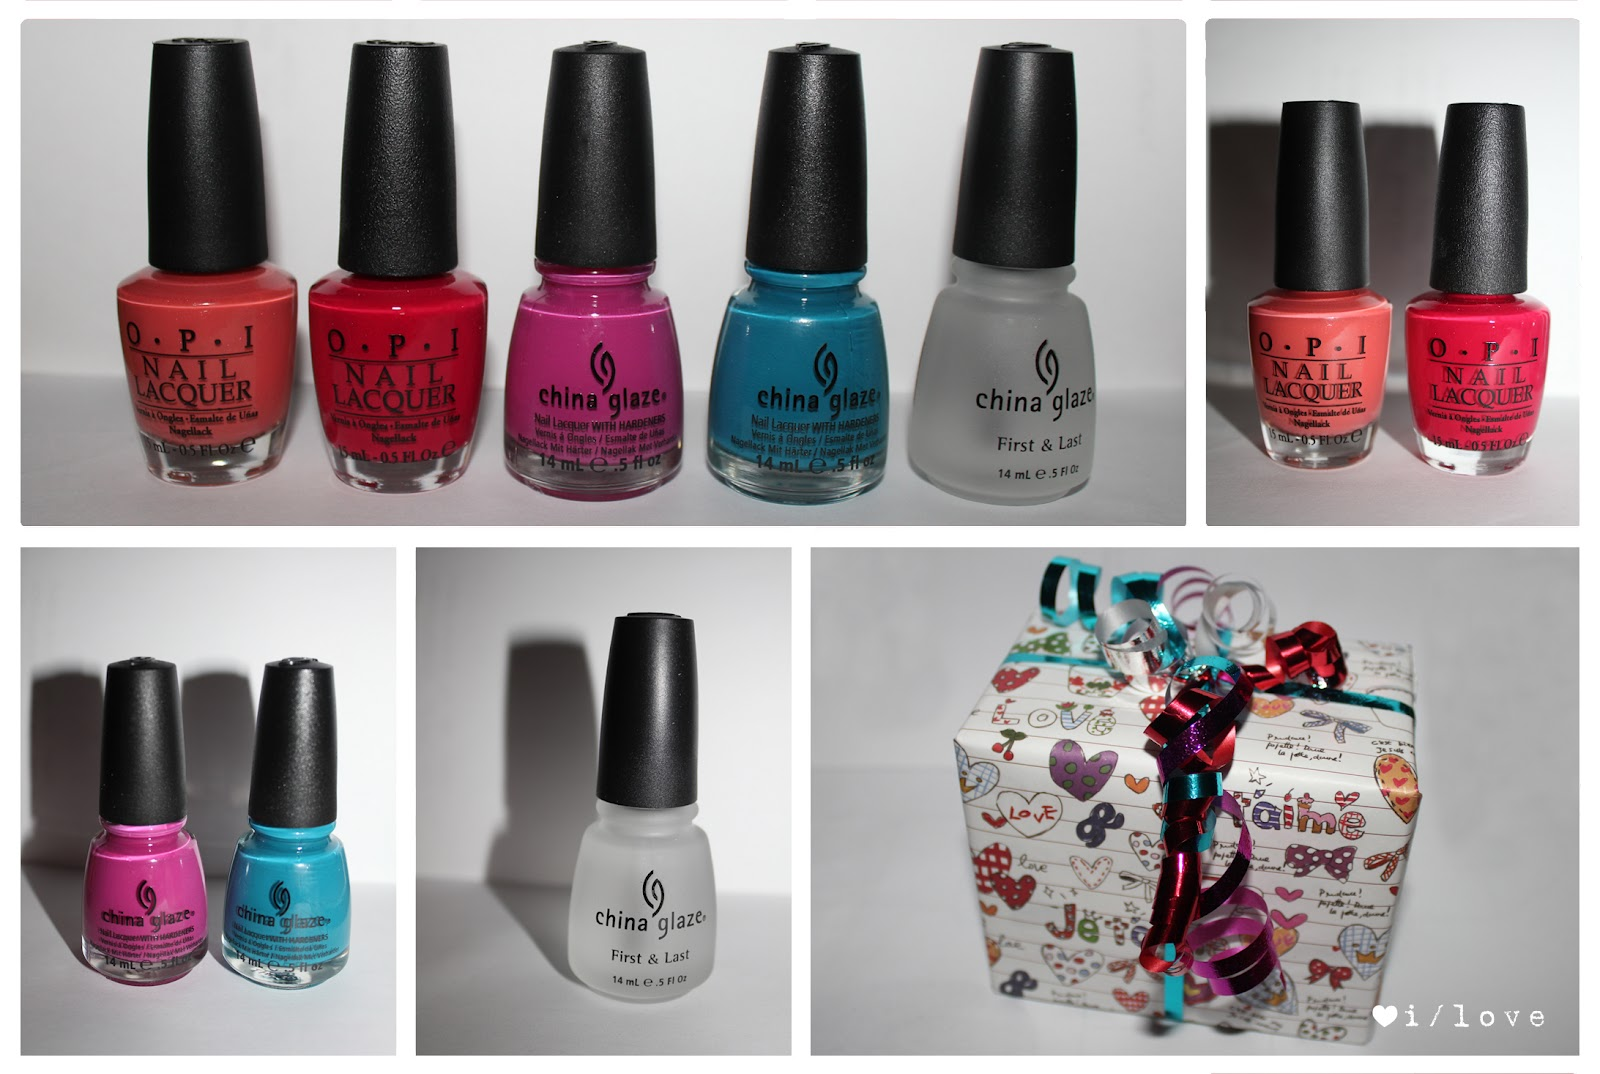 Oilove birthday gift nail polish also at secret nails i got a bottle of nail polish thinner for myself since the nail polish i have most of them are going bad solutioingenieria Choice Image